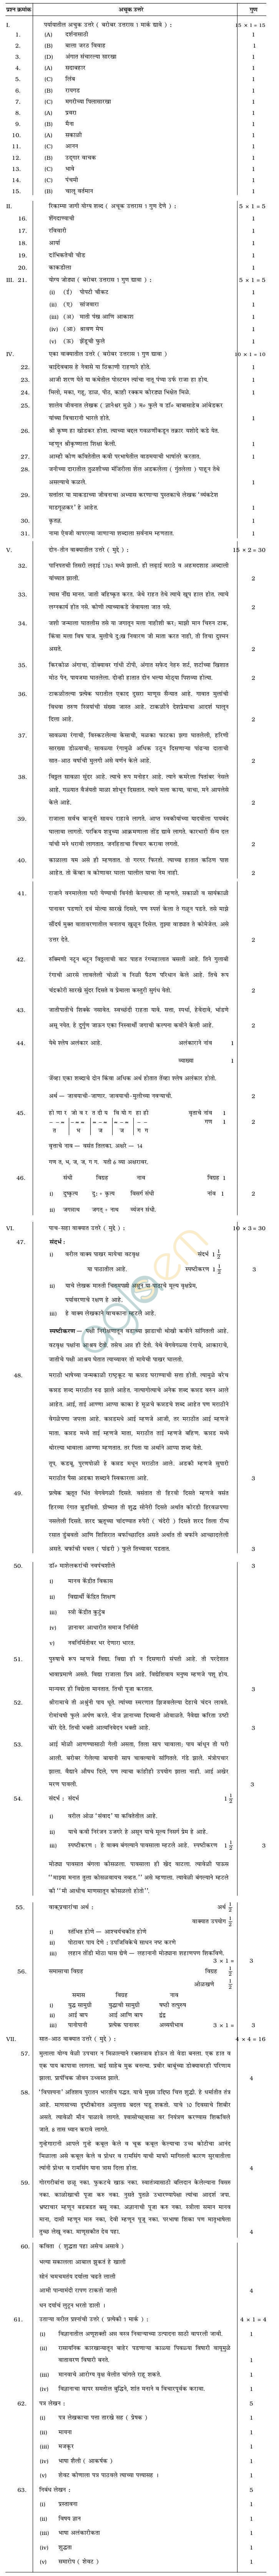 Karnataka SSLC Solved Question Paper June 2014 - Marathi